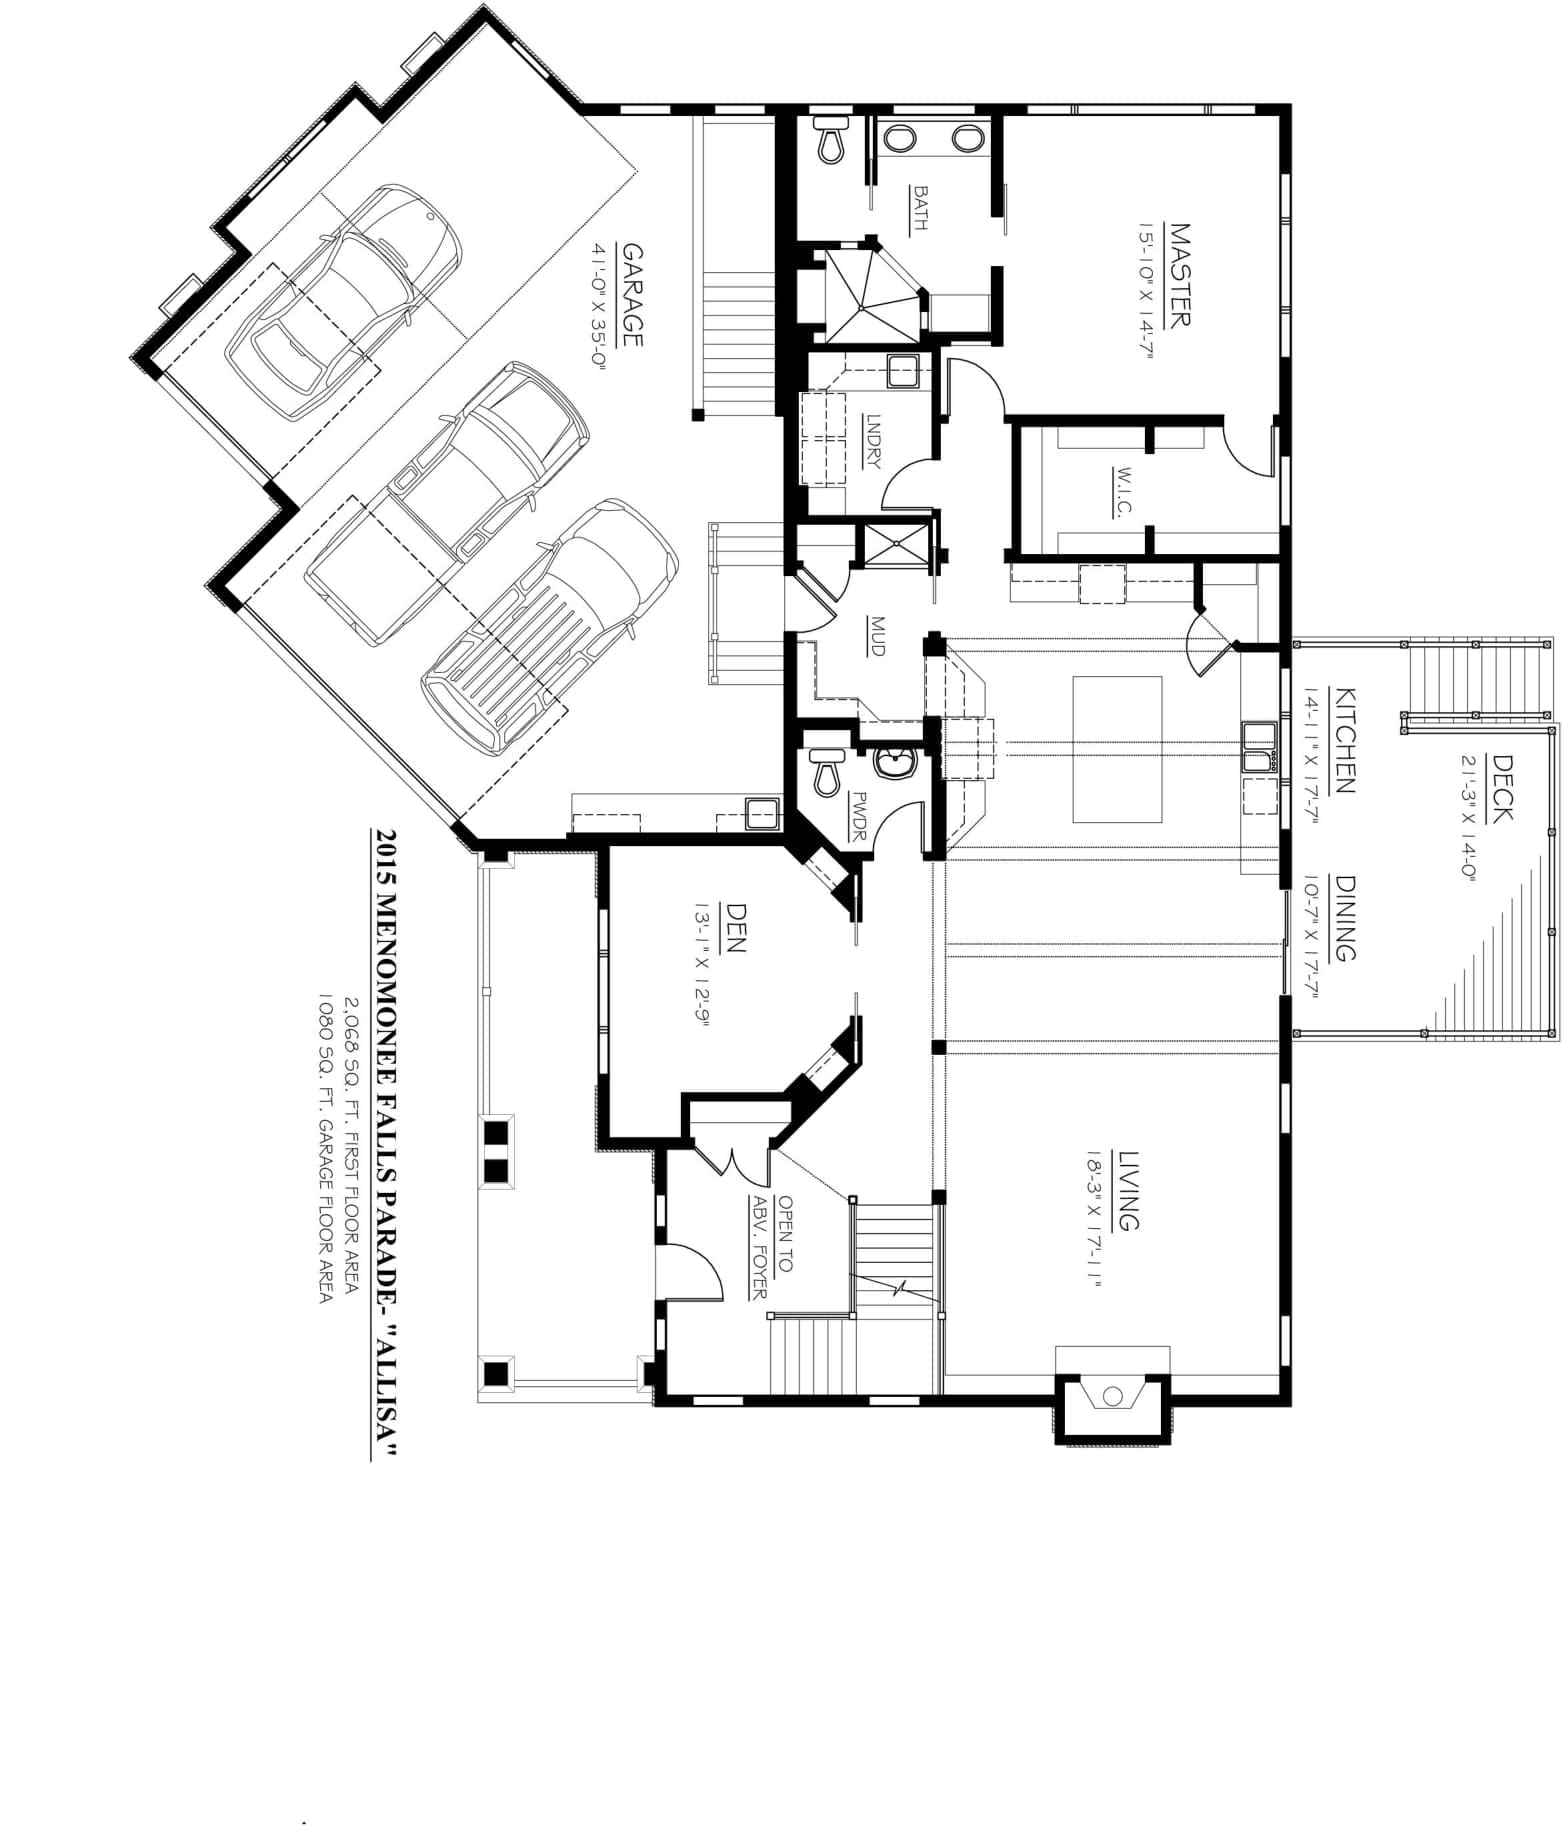 Kaerek Homes Allisa First Floor Plan